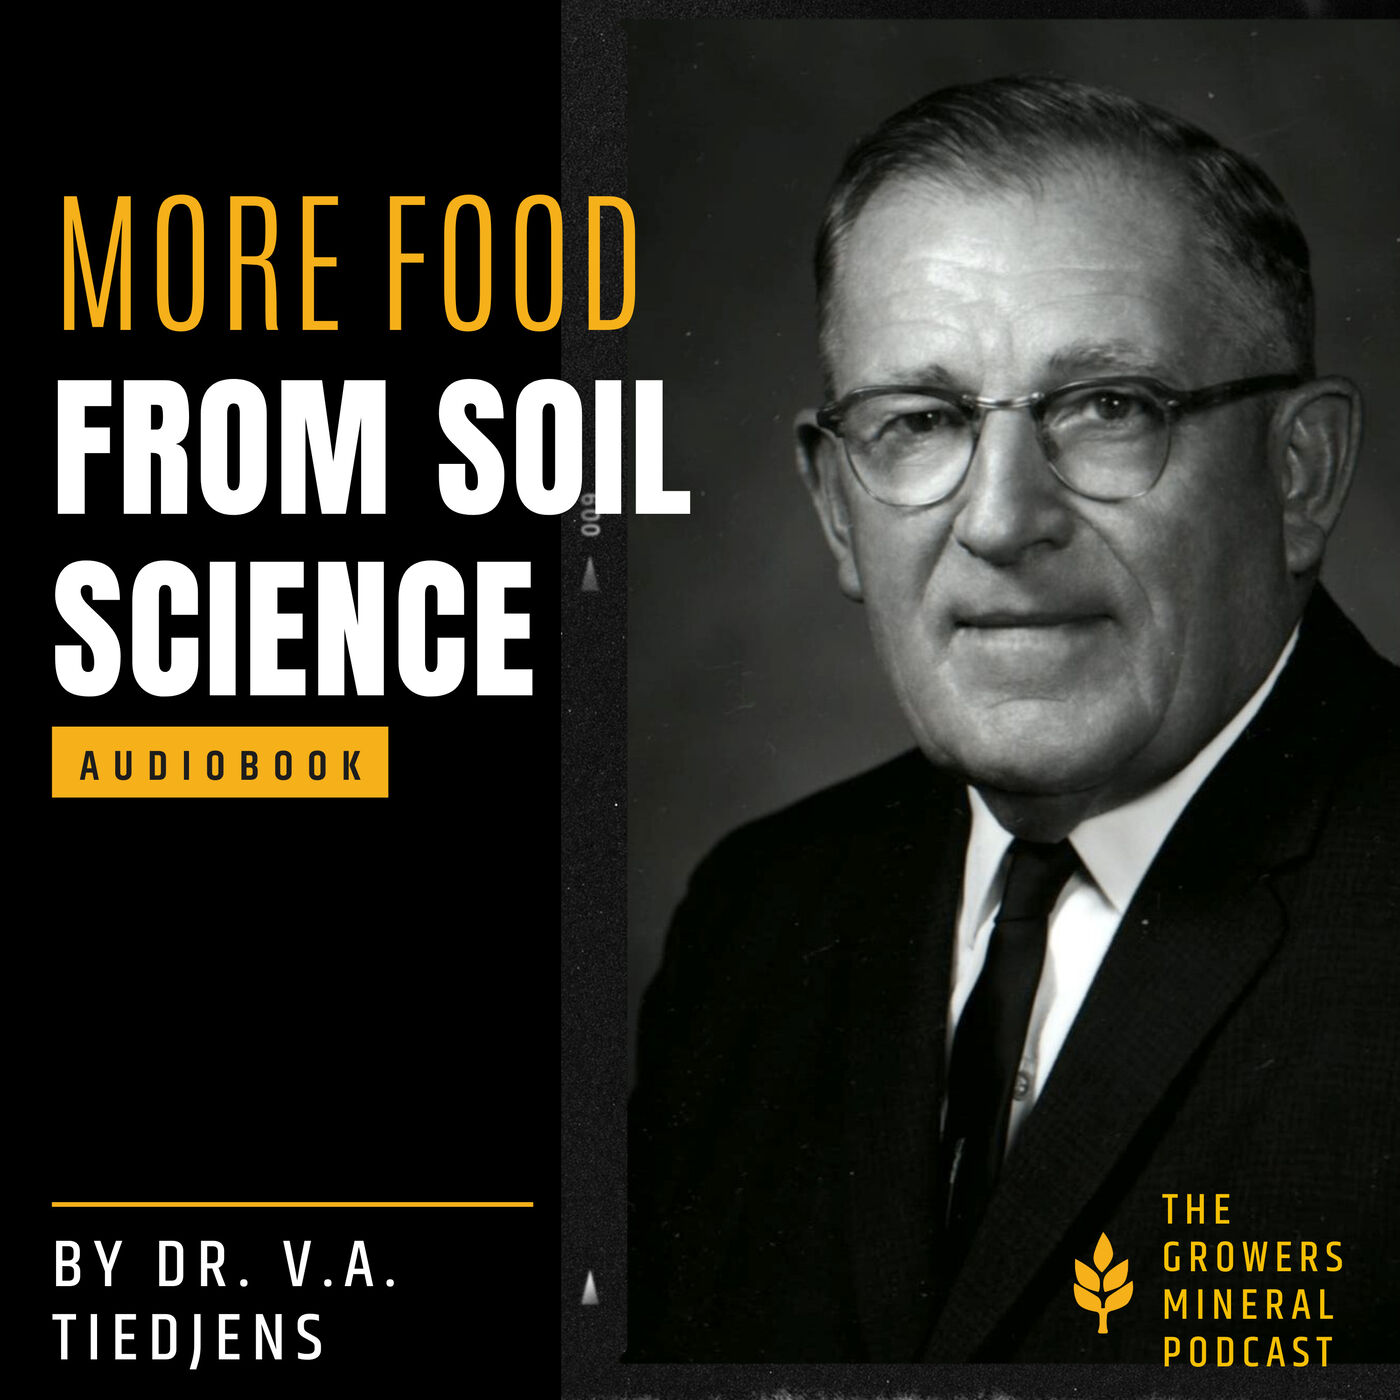 More Food from Soil Science Audiobook Ch. 4 - Fundamental Research Must be Given Preference